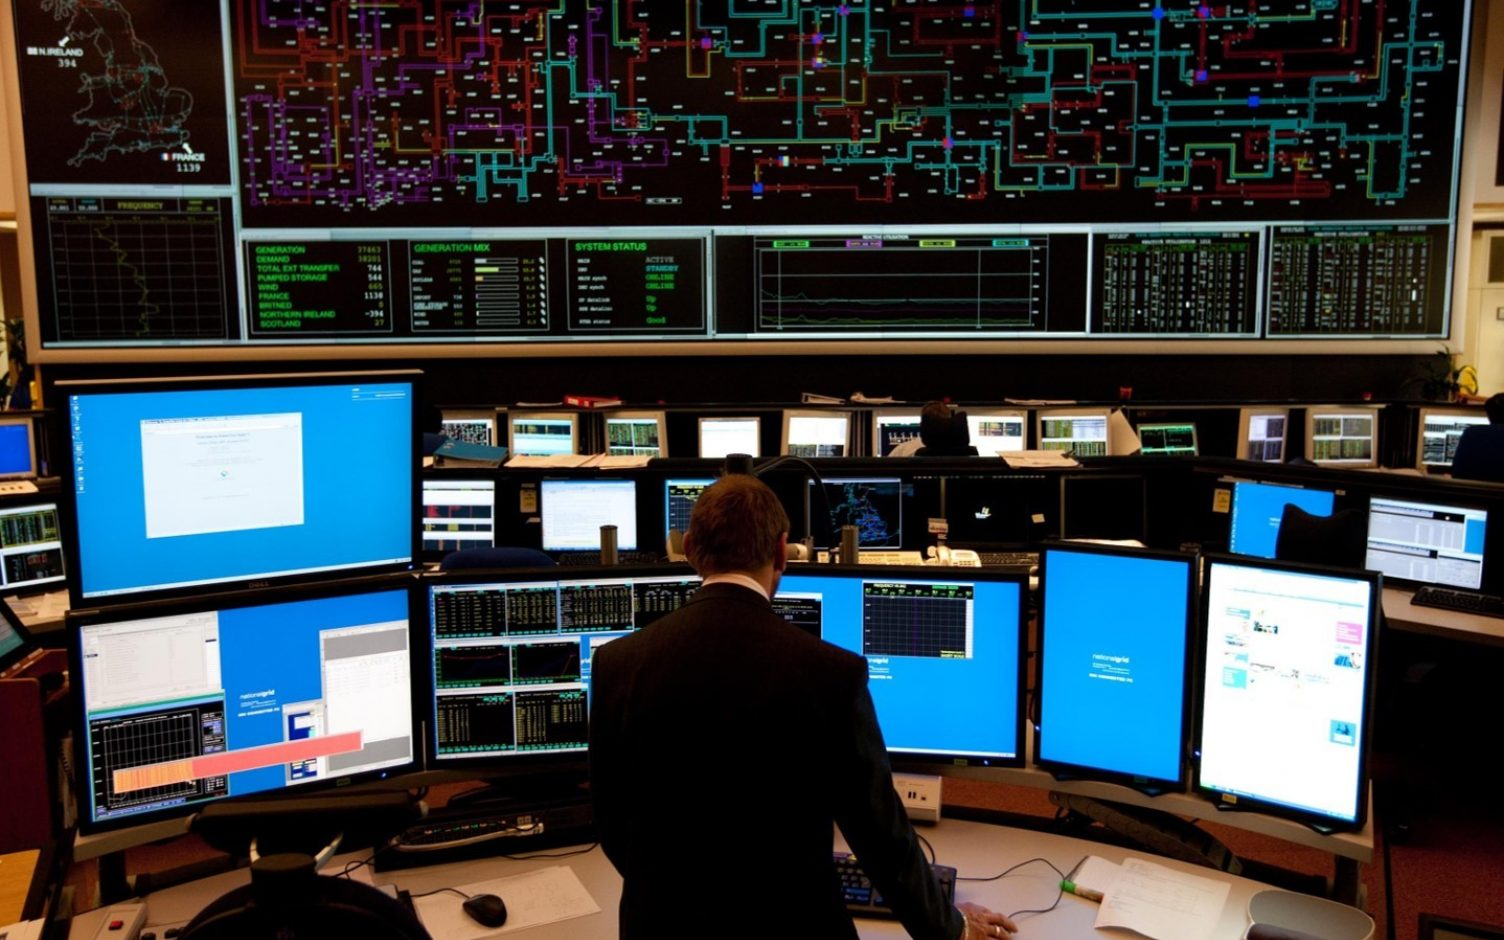 Flexitricity control room. Image: Flexitricity.